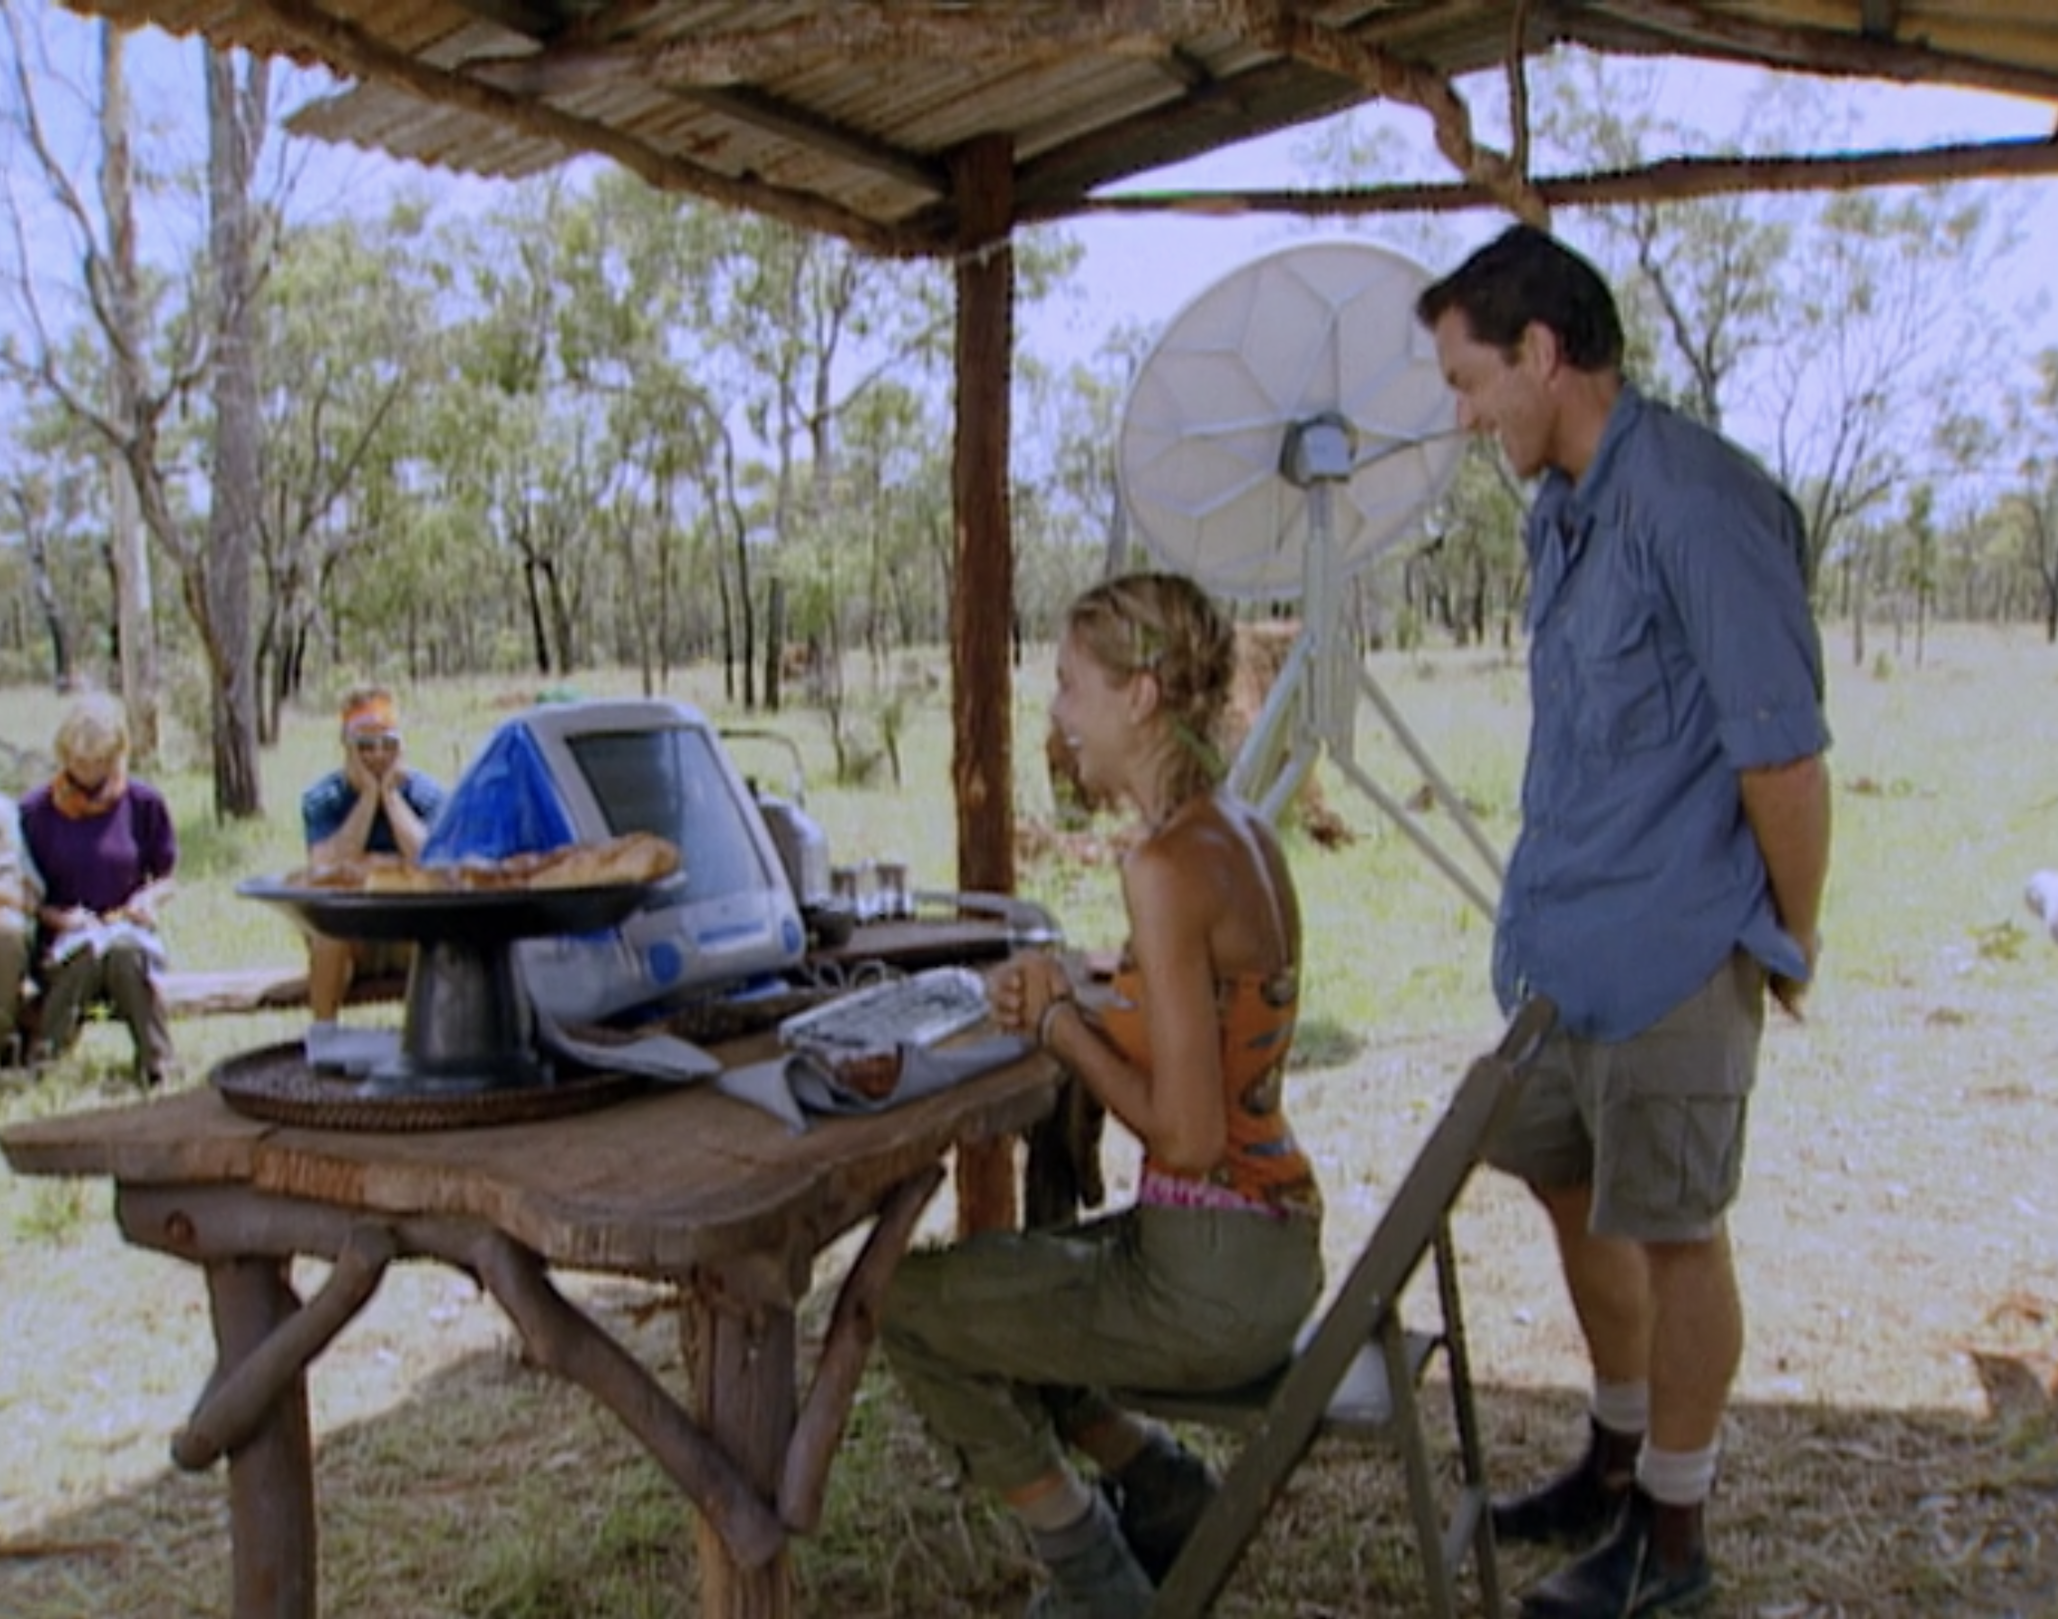 Elisabeth sits down at an iMac computer while Jeff stands behind her